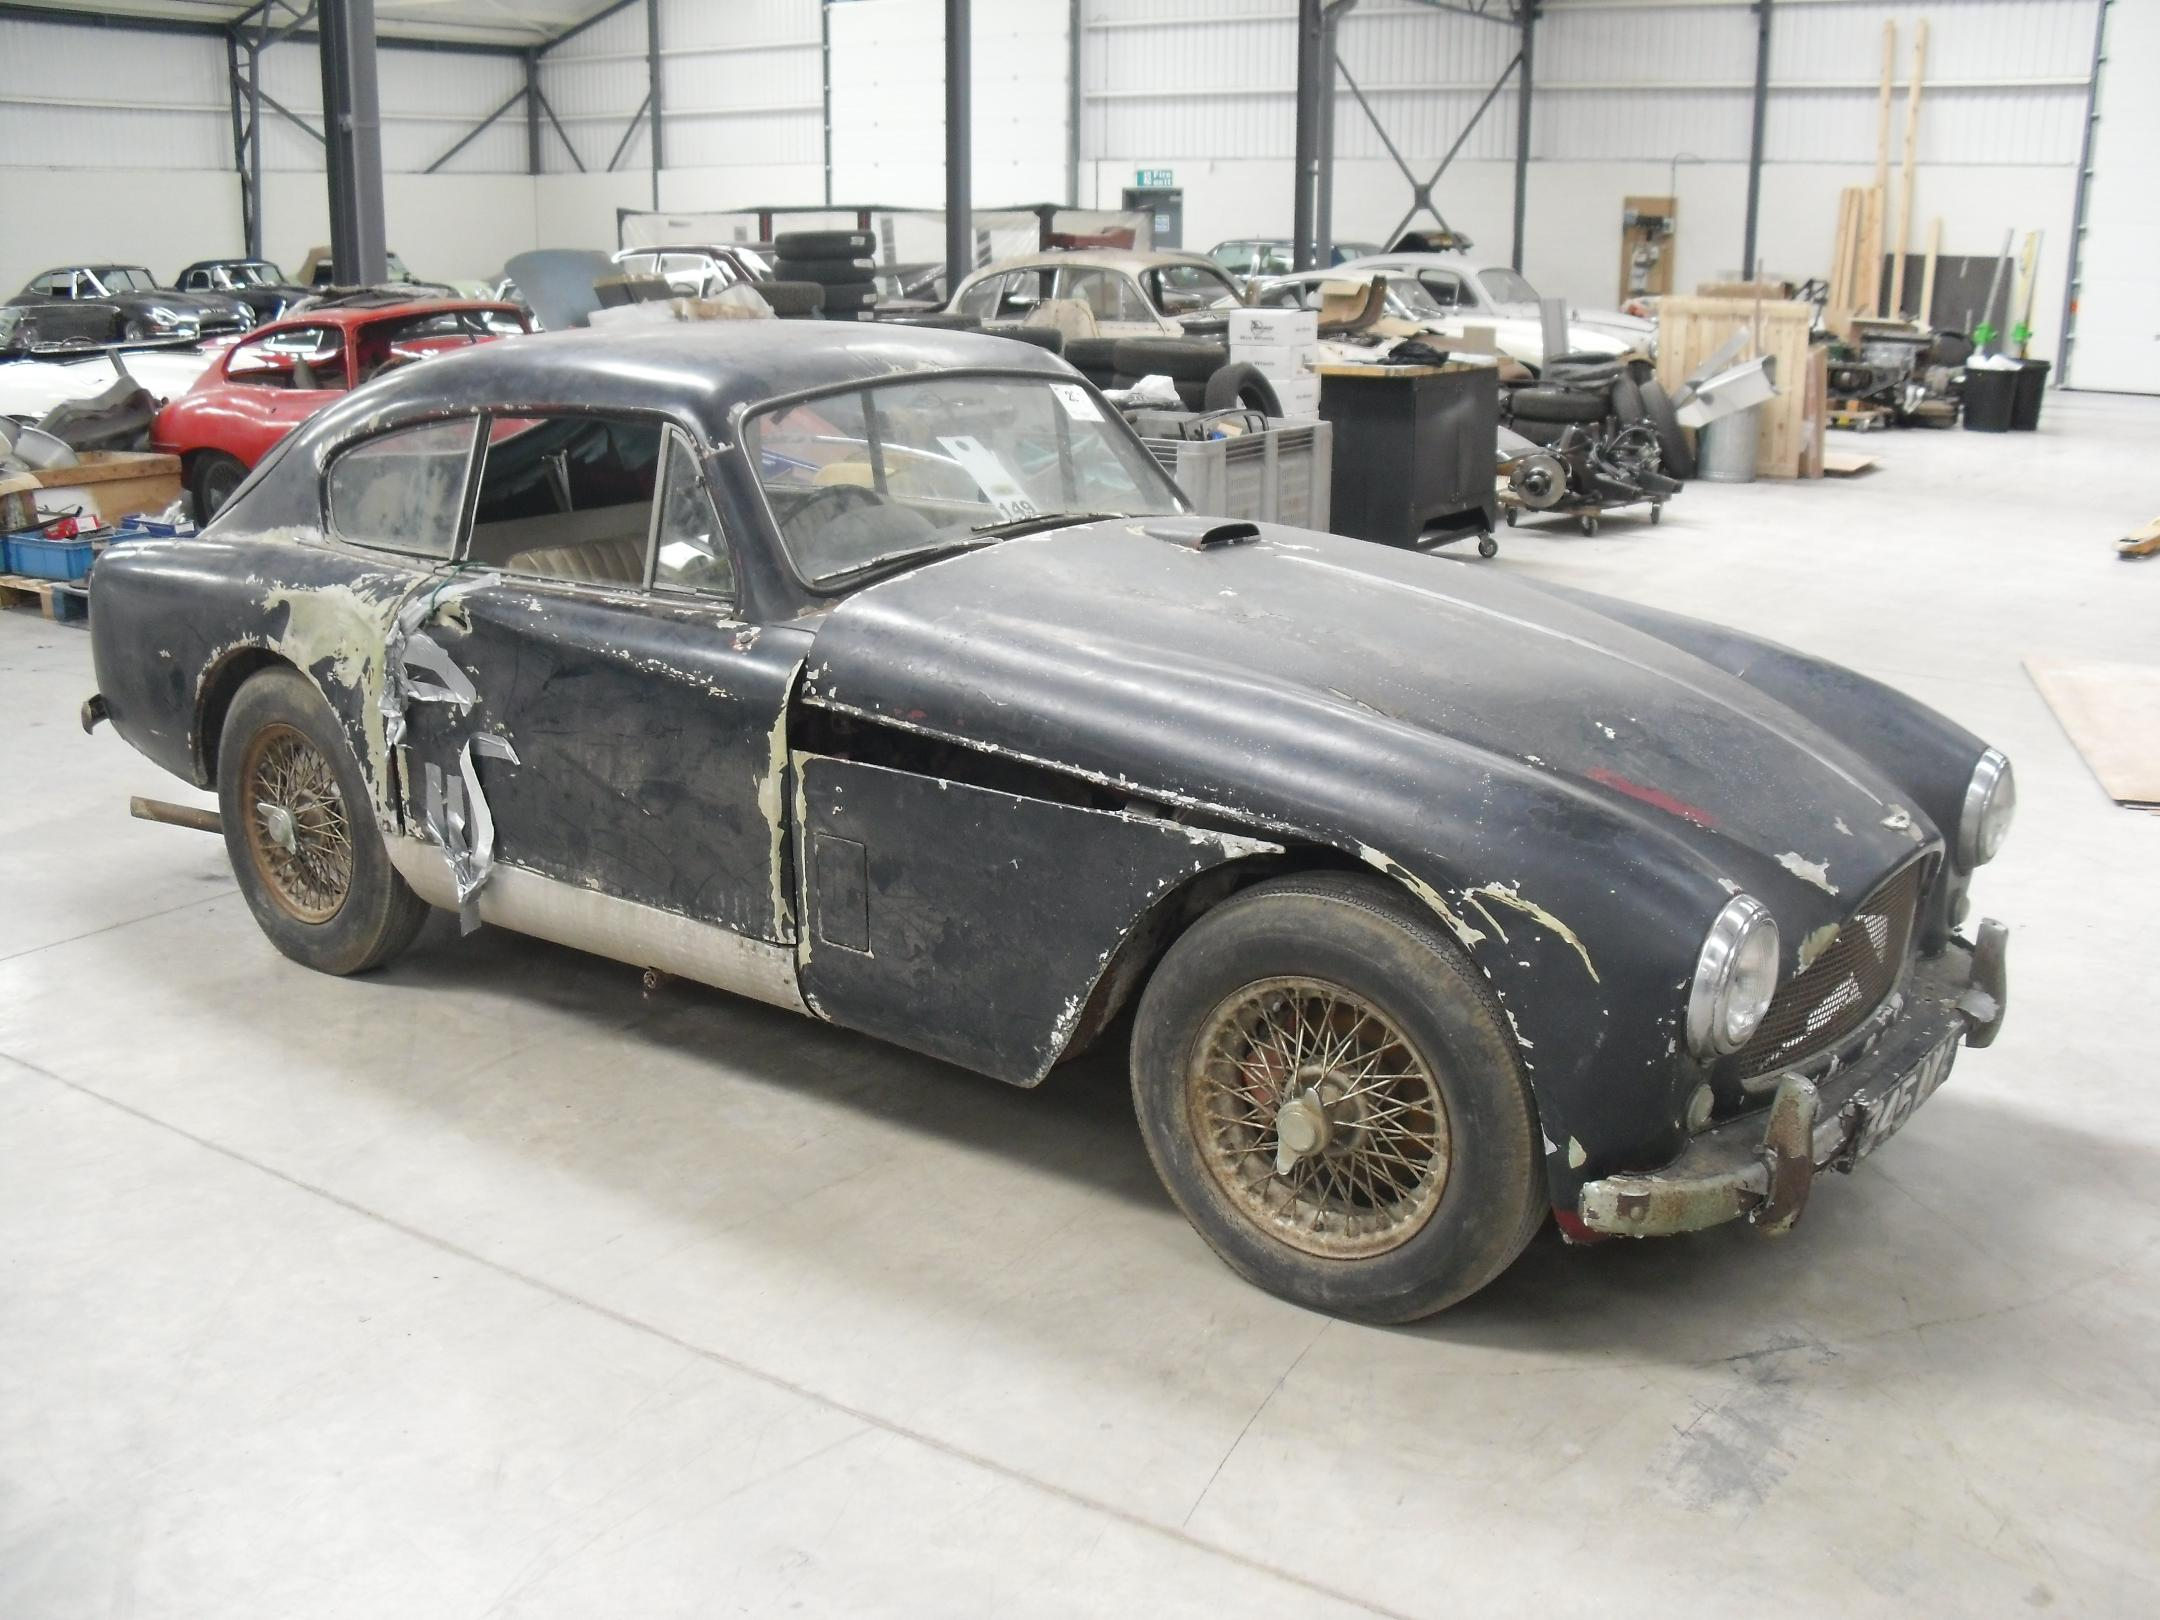 Rare Barn Find Aston Martin DB To Be Restored Just British - Aston martin restoration project for sale